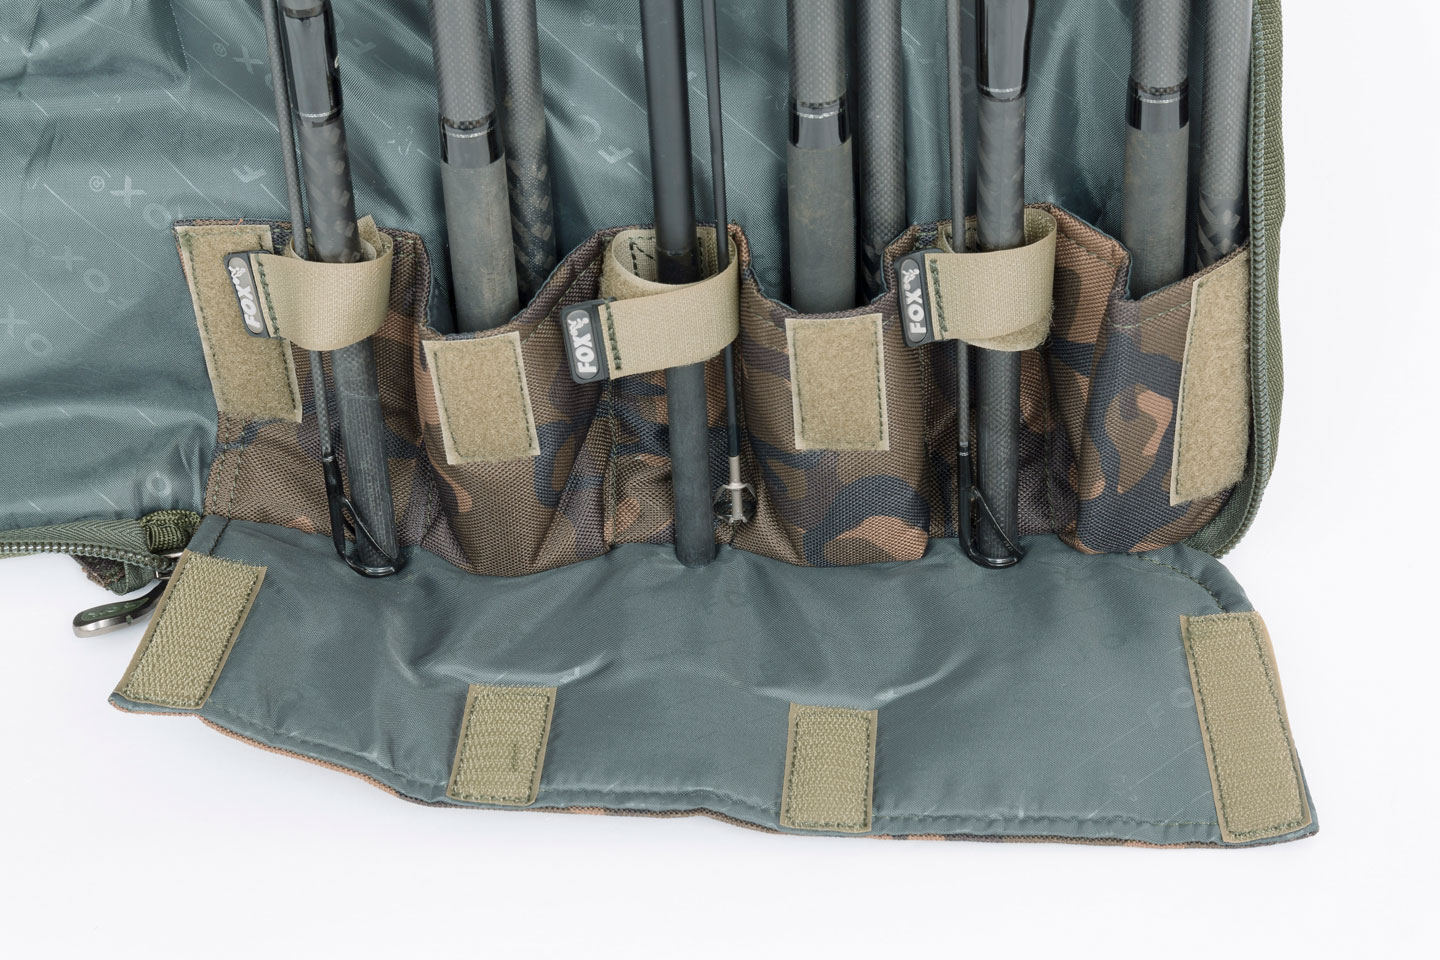 camolite-12ft-6-rod-holdall_cu04gif